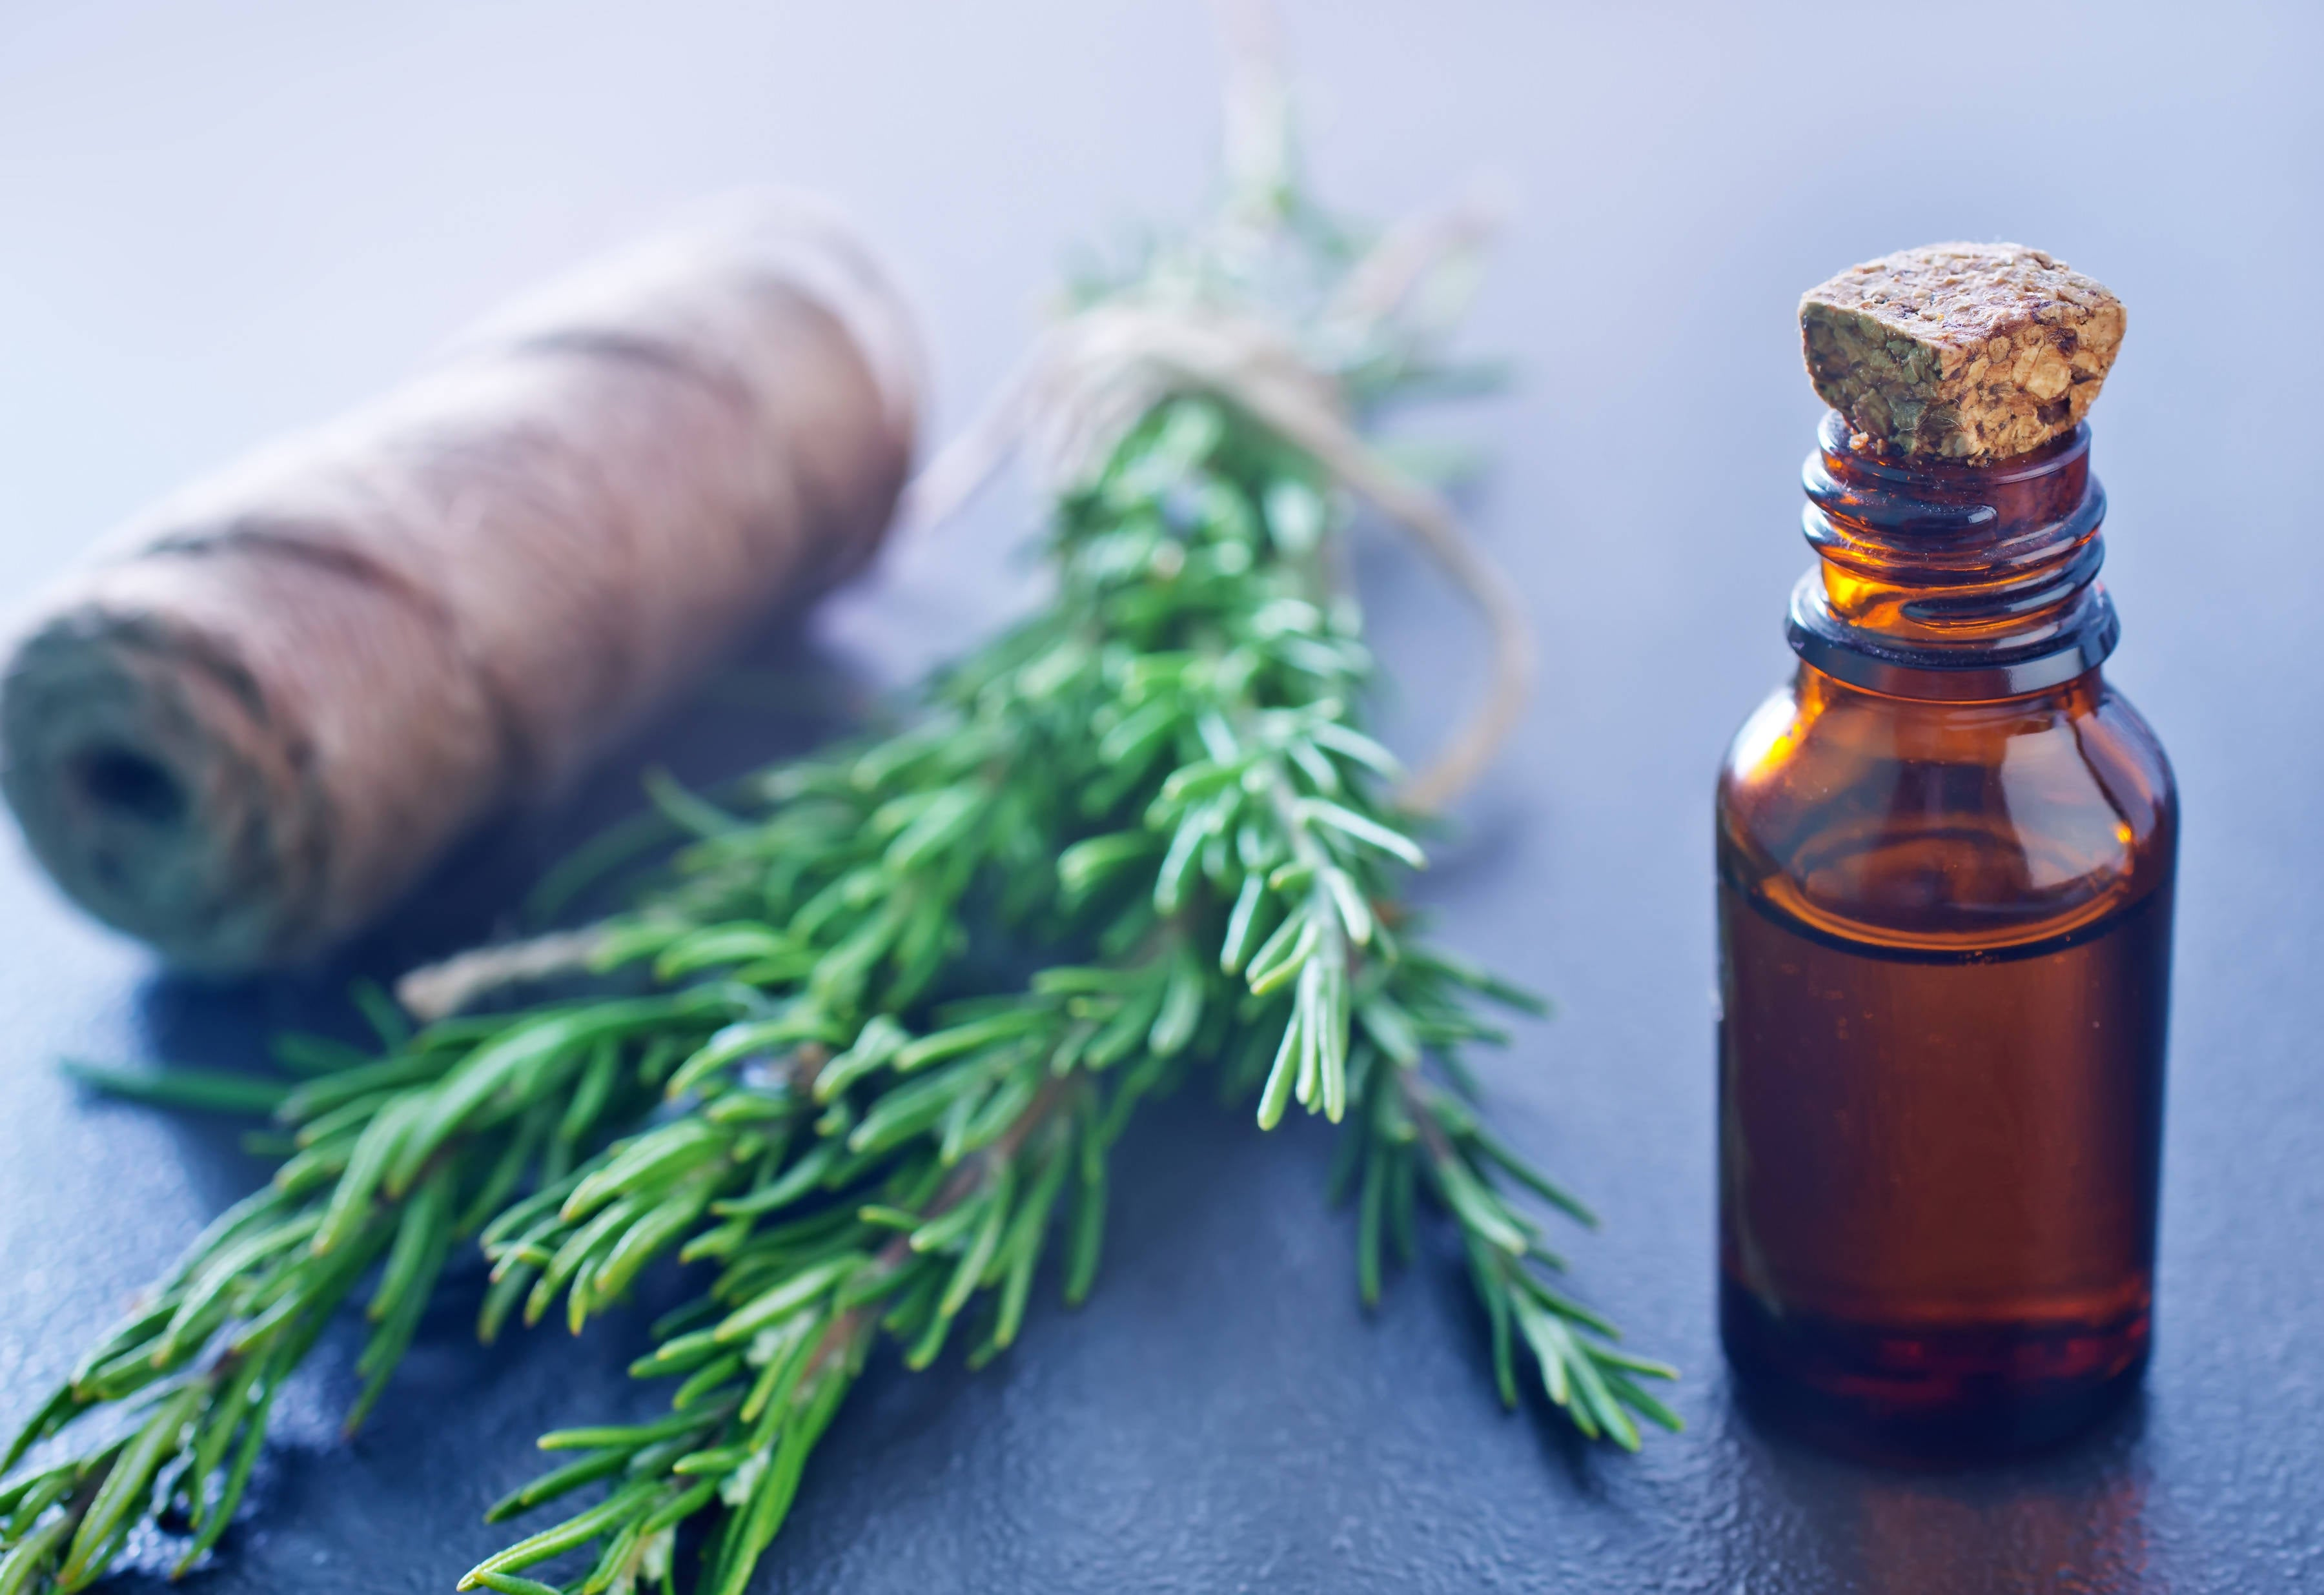 ROSEMARY, EMU AND PEPPERMINT HERBAL HAIR GROWTH OIL